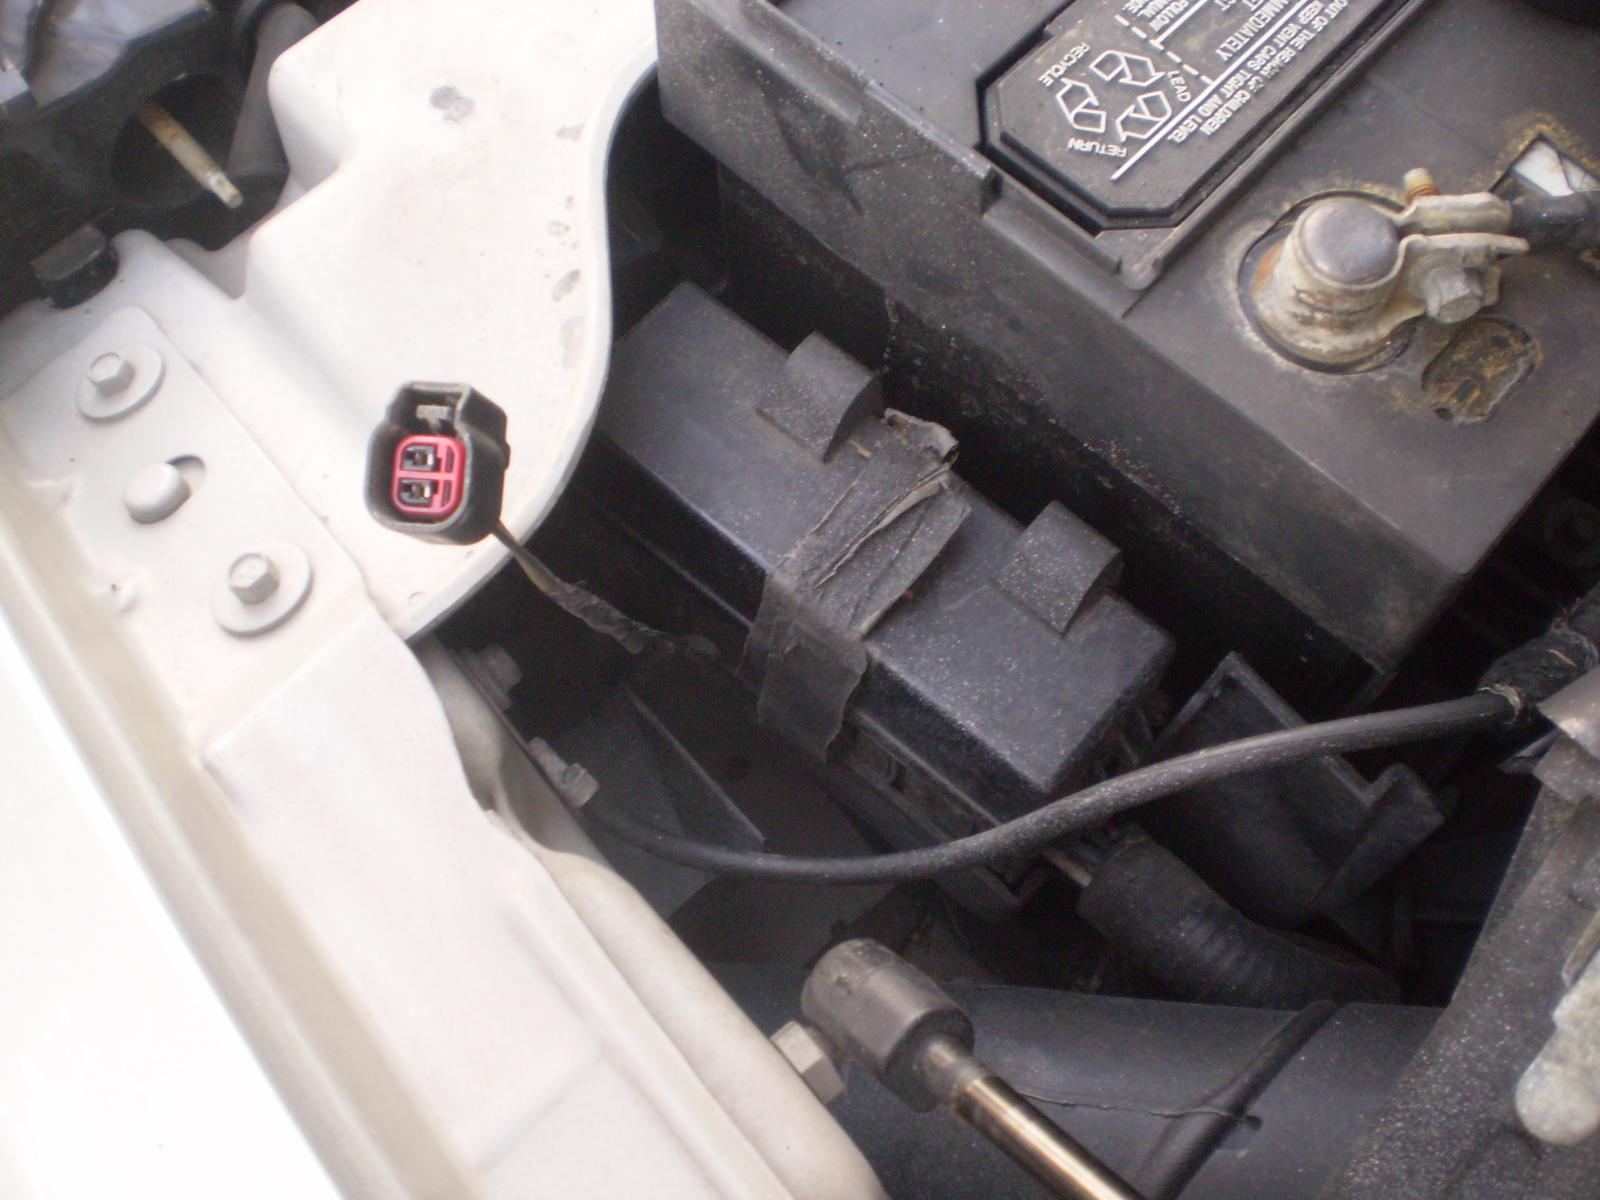 2008 Chevy Cobalt Wiring Diagram Is This The Plug For The Ambient Temp Sensor Taurus Car